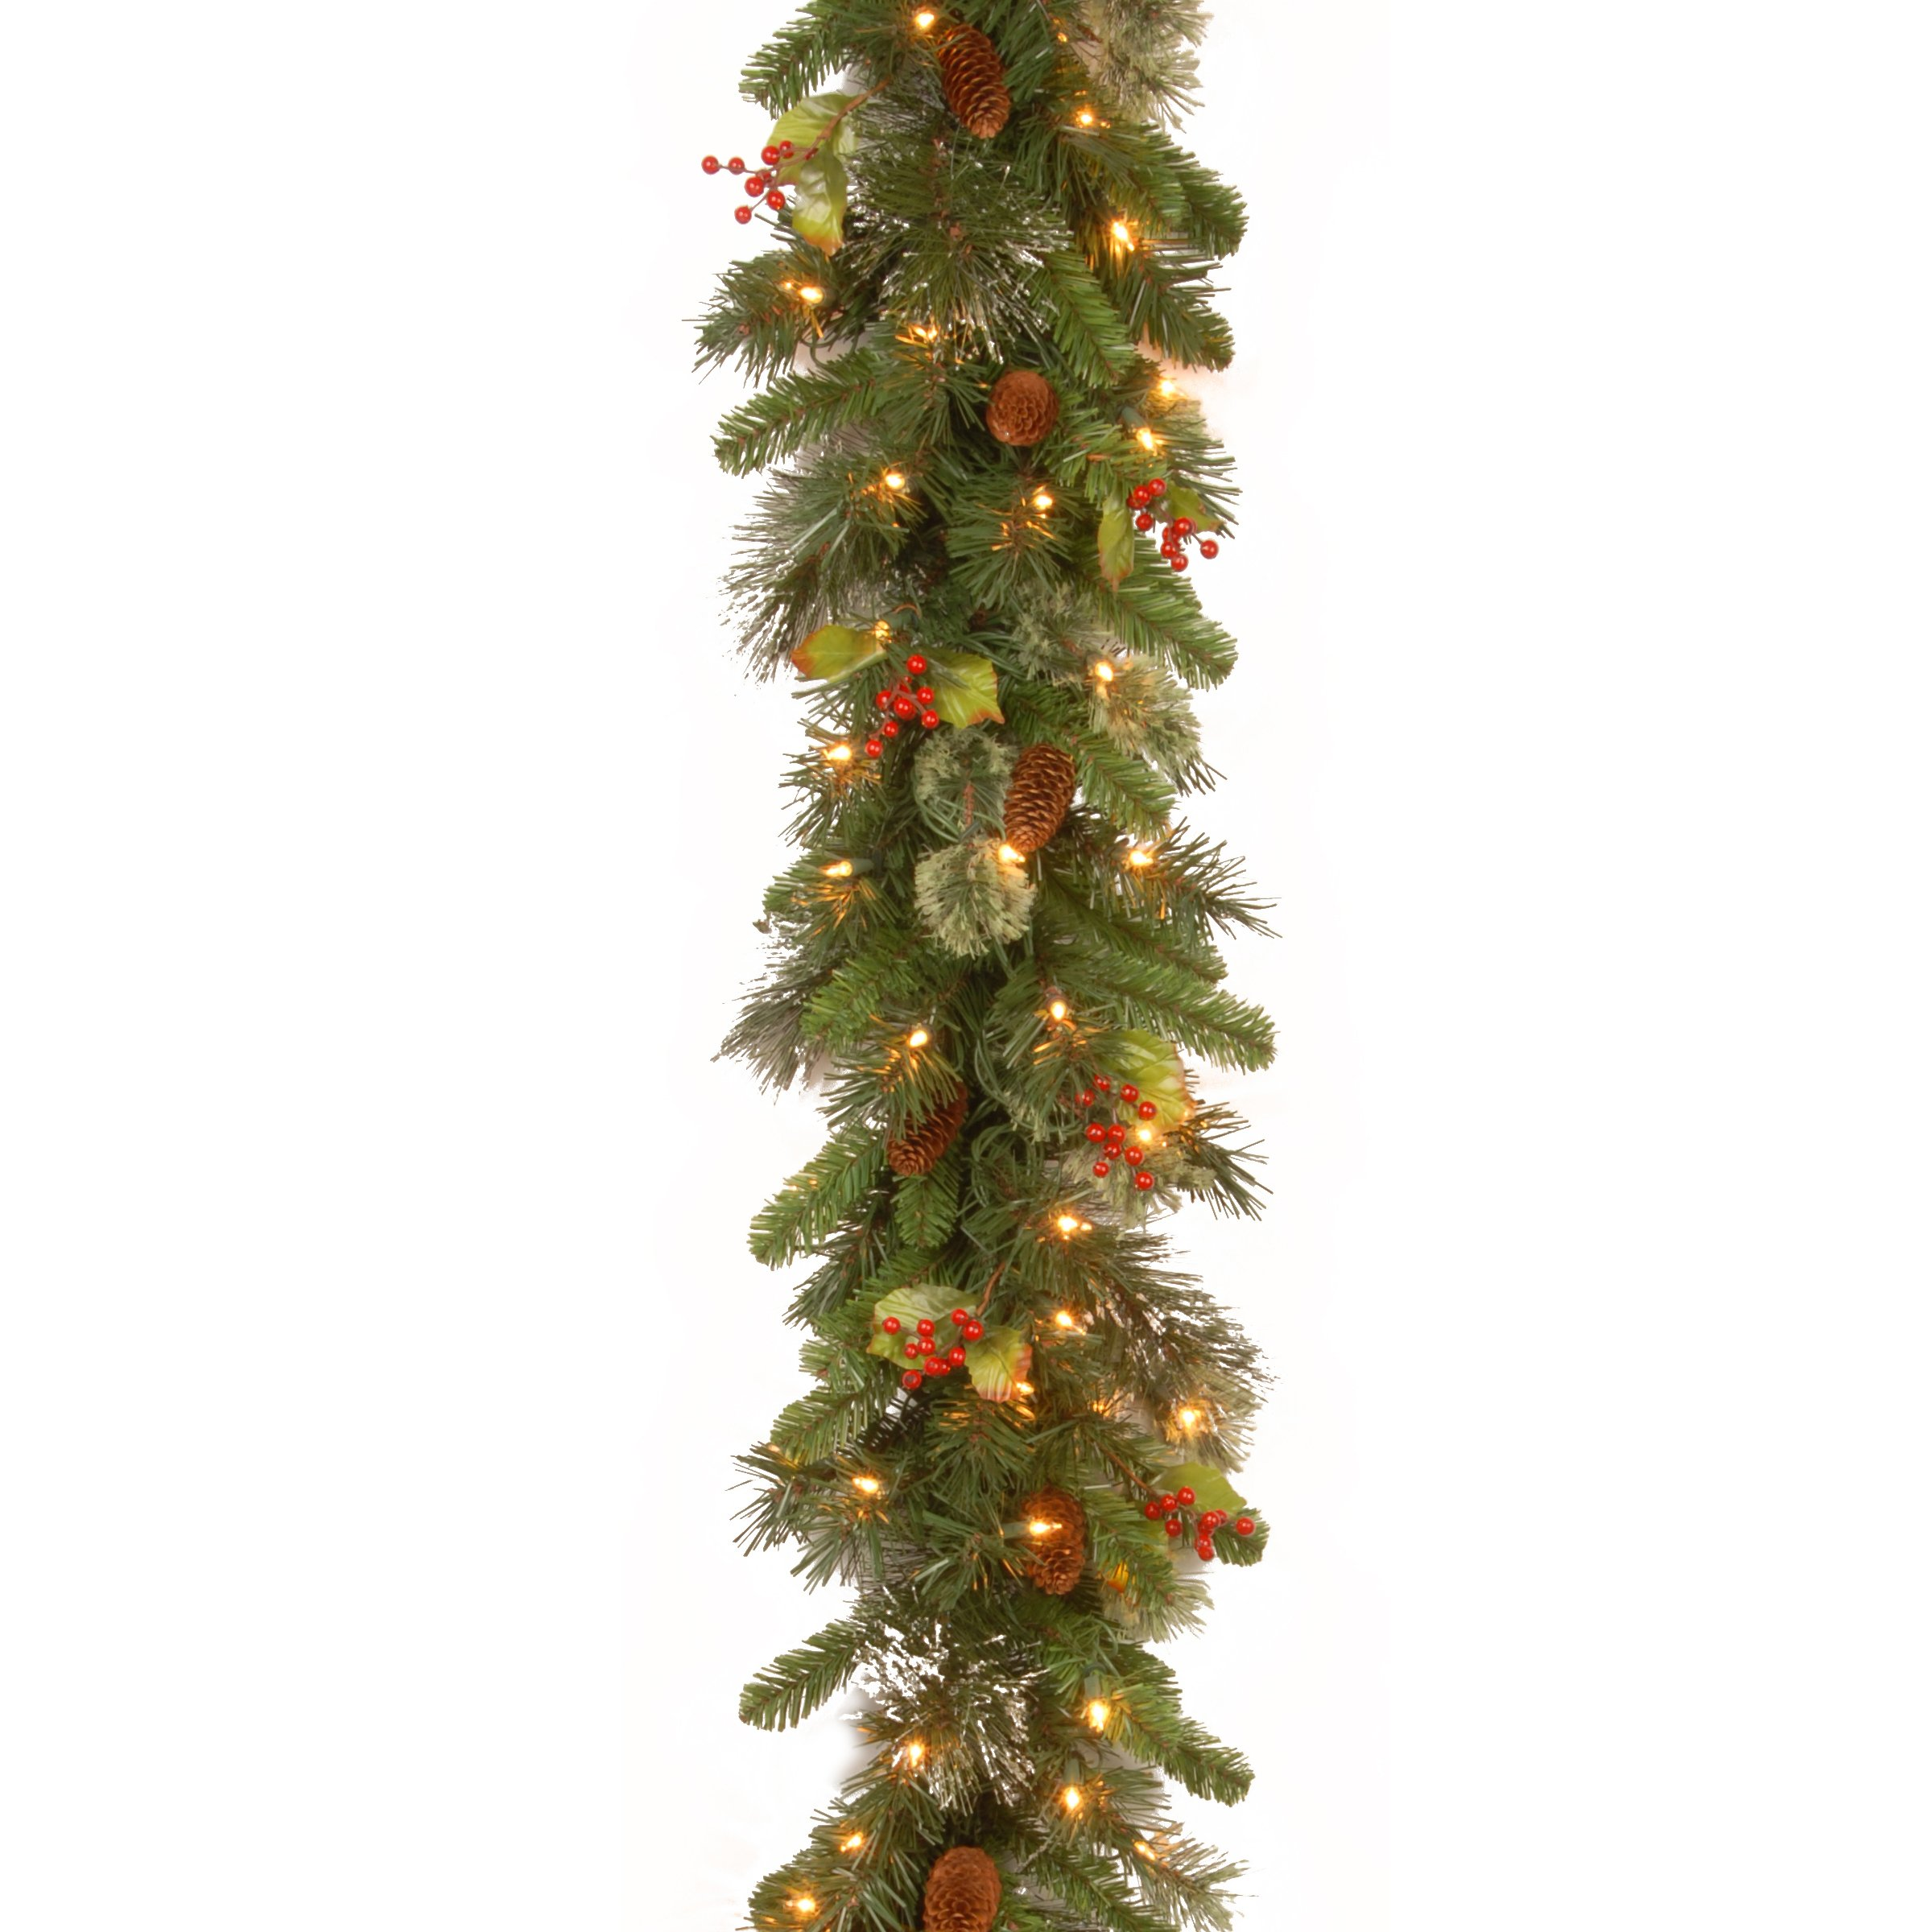 National Tree 9 Foot by 12 Inch Wintry Pine Garland with Red Berries, Cones and Snowflakes and 100 Clear Lights (WP1-300-9B-1)